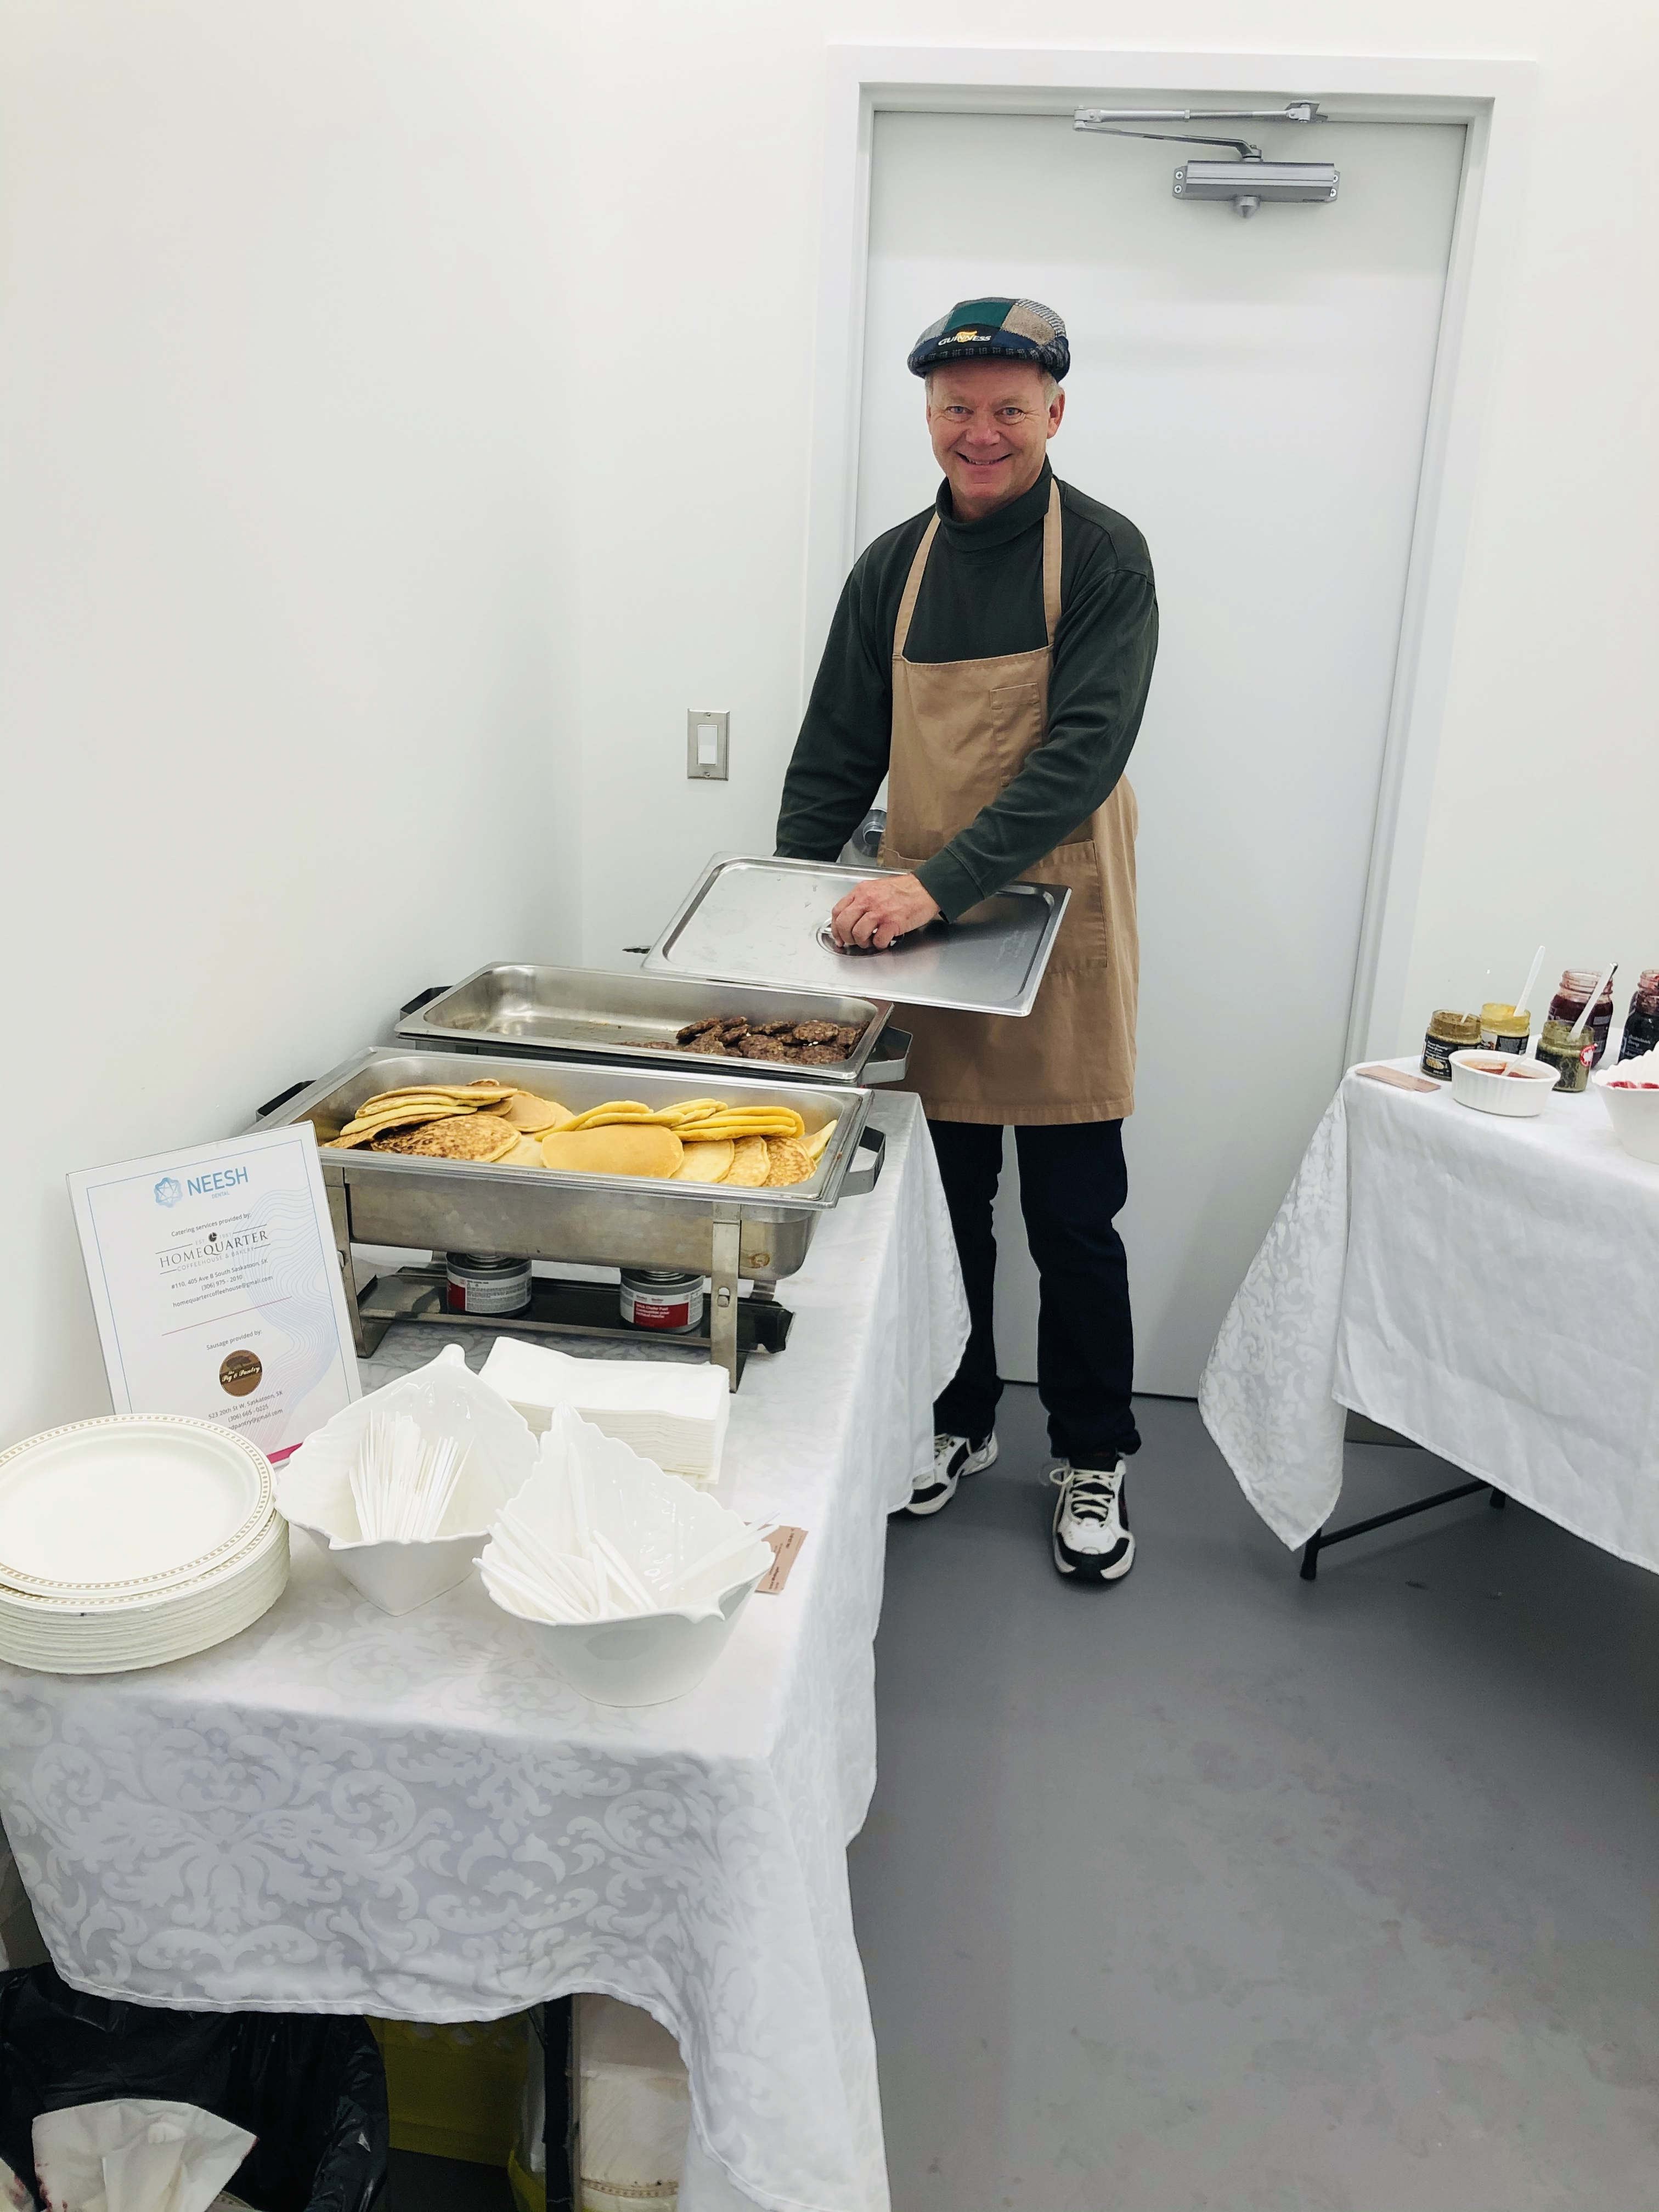 A man smiles at a serving area for a pancake breakfast, hosted for the grand opening of Neesh Dental in Saskatoon Saskatchewan.